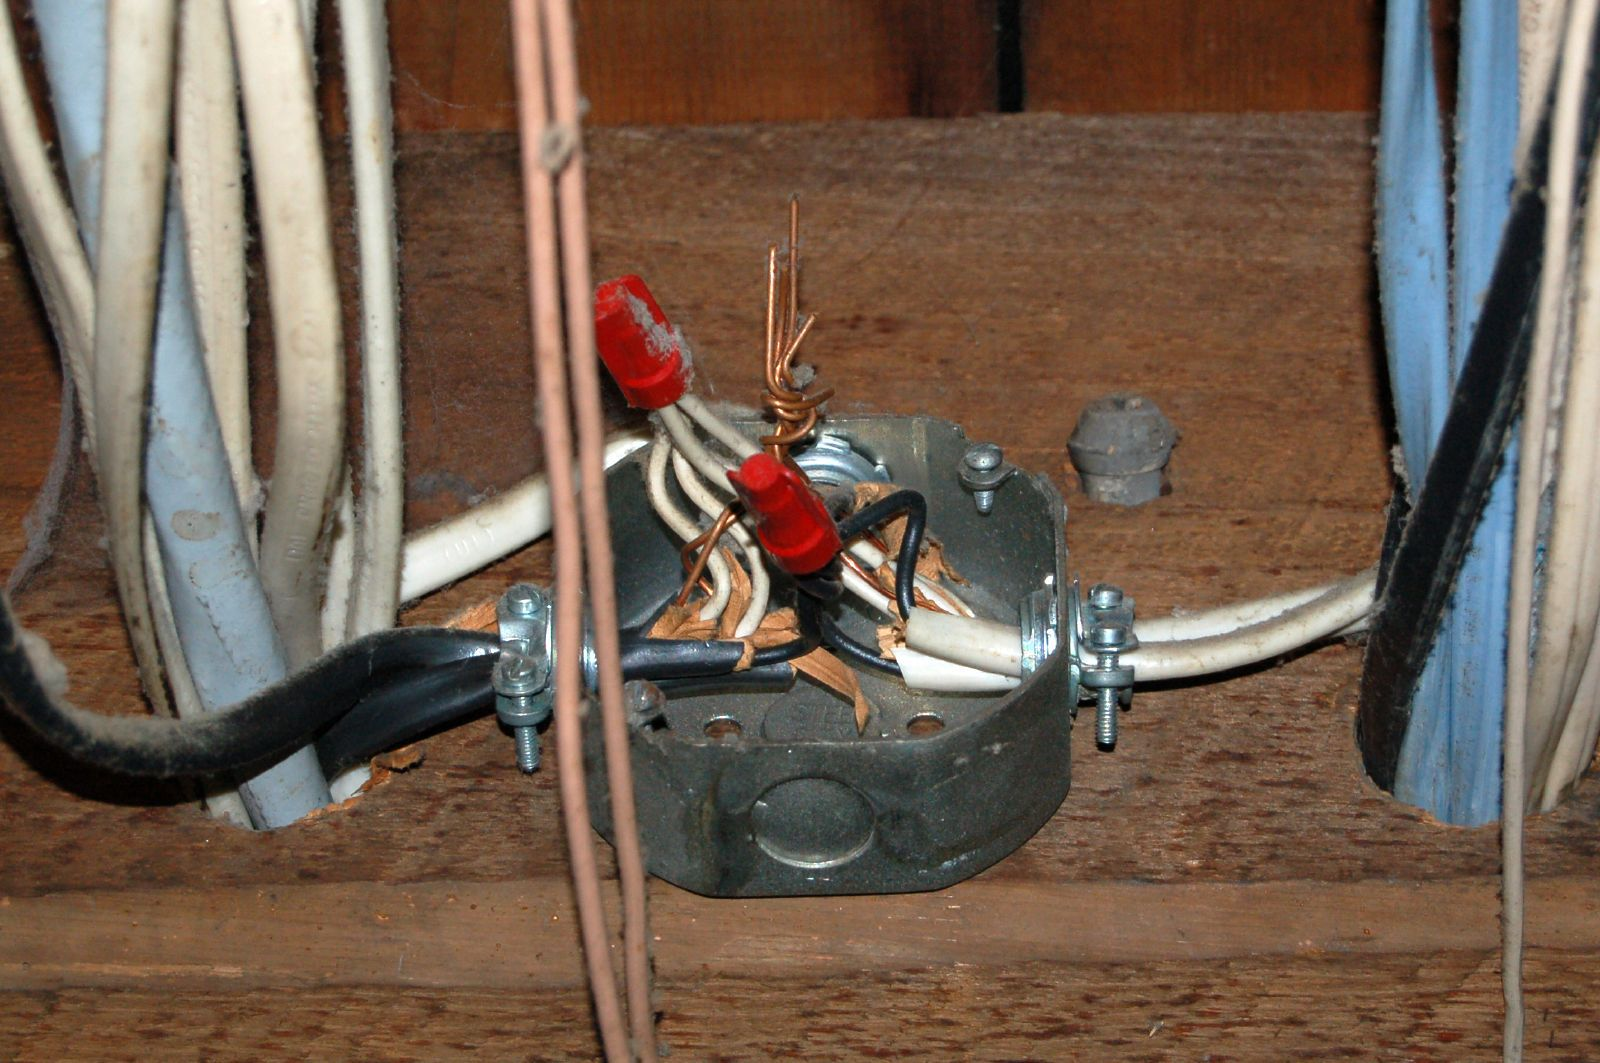 Home Wiring Basics That You Should Know